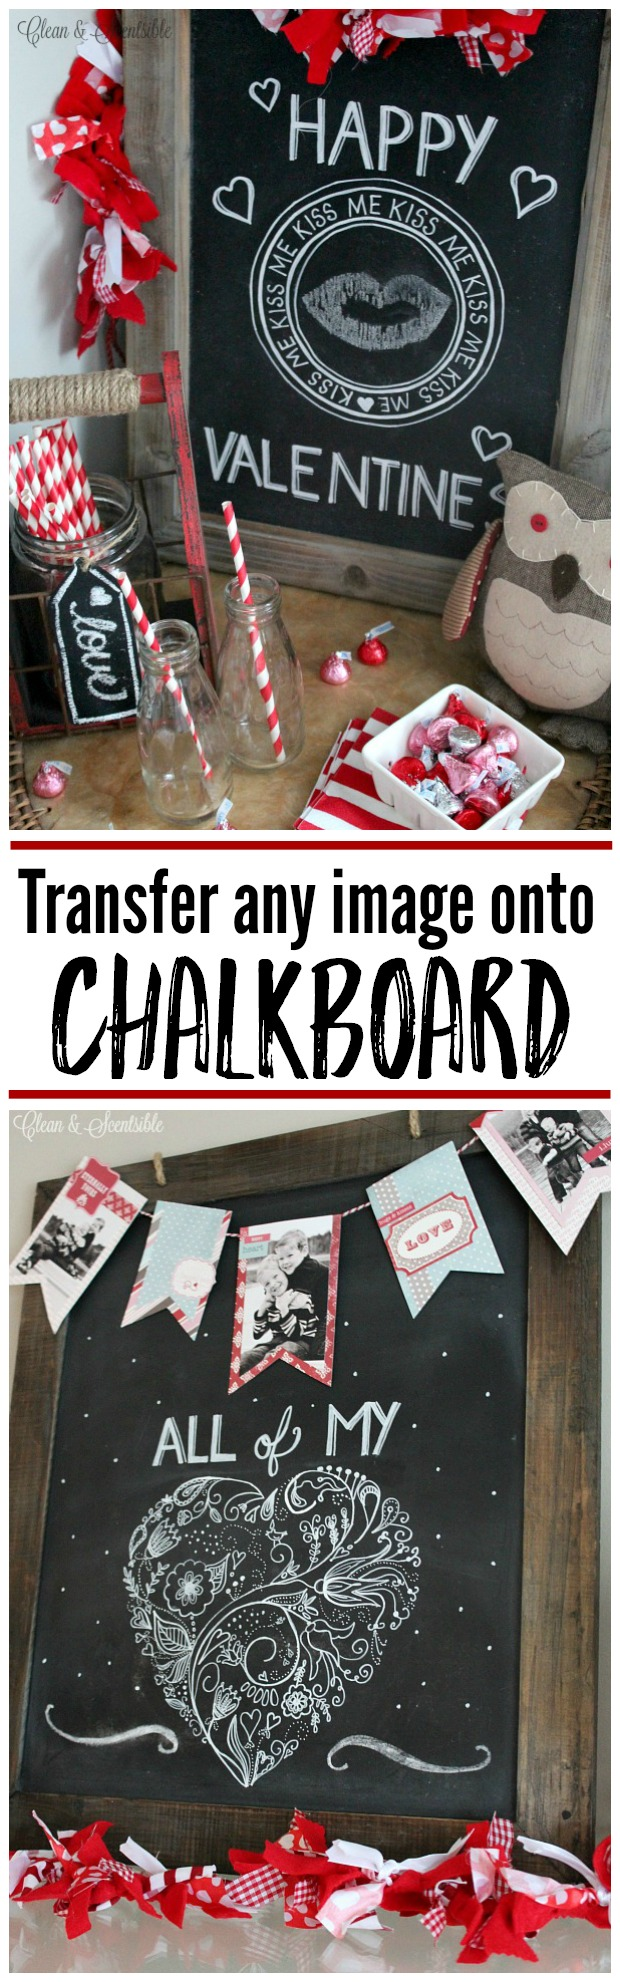 Use this simple technique to transfer any image onto chalkboard. No skills needed!